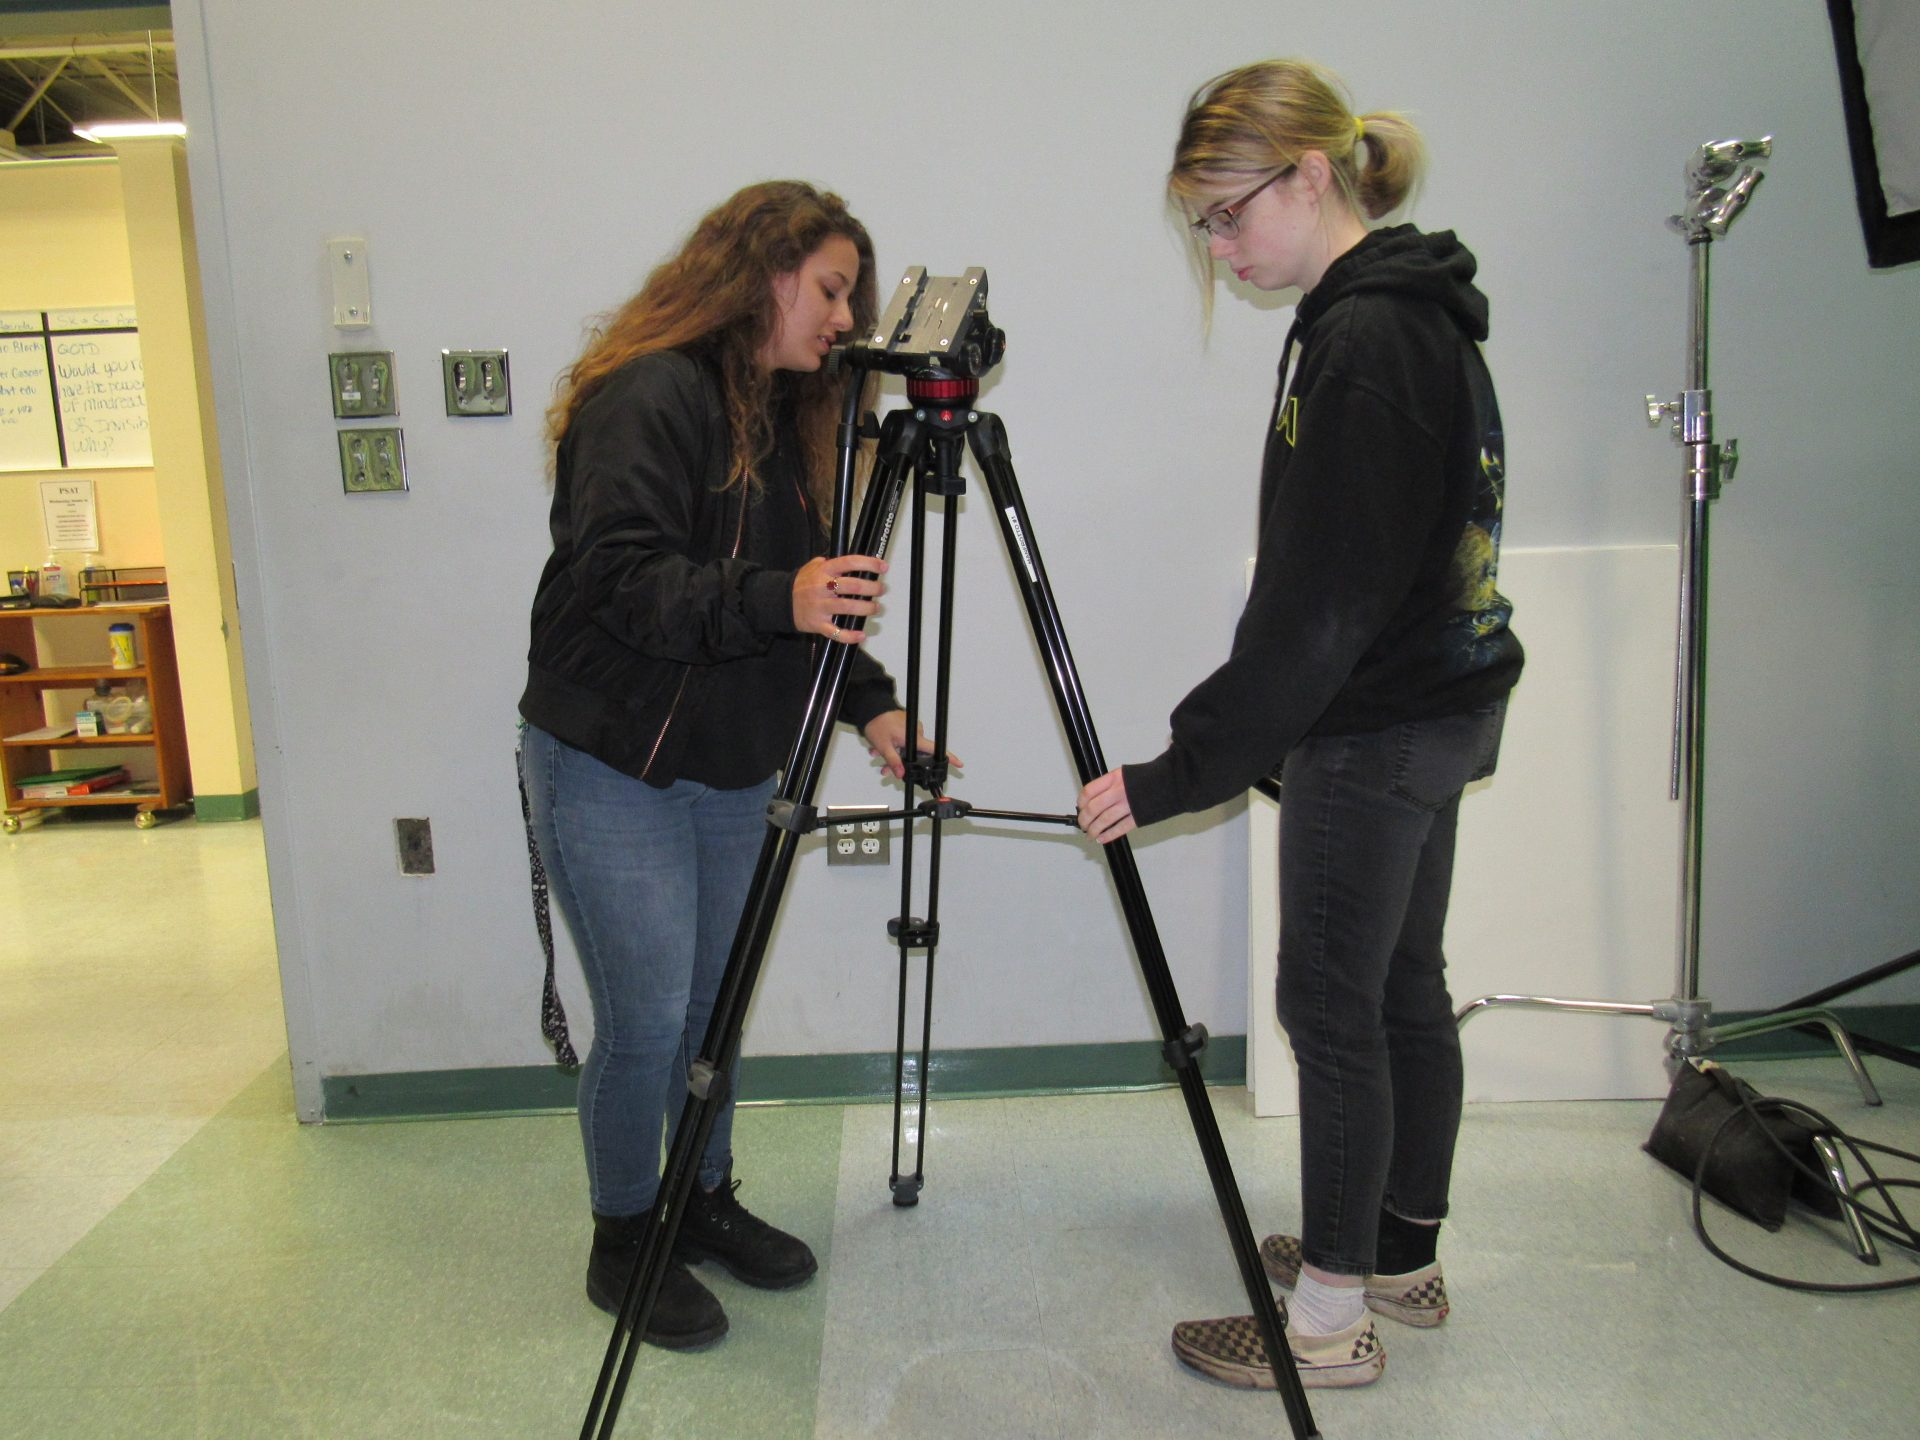 Media students setting up tripod